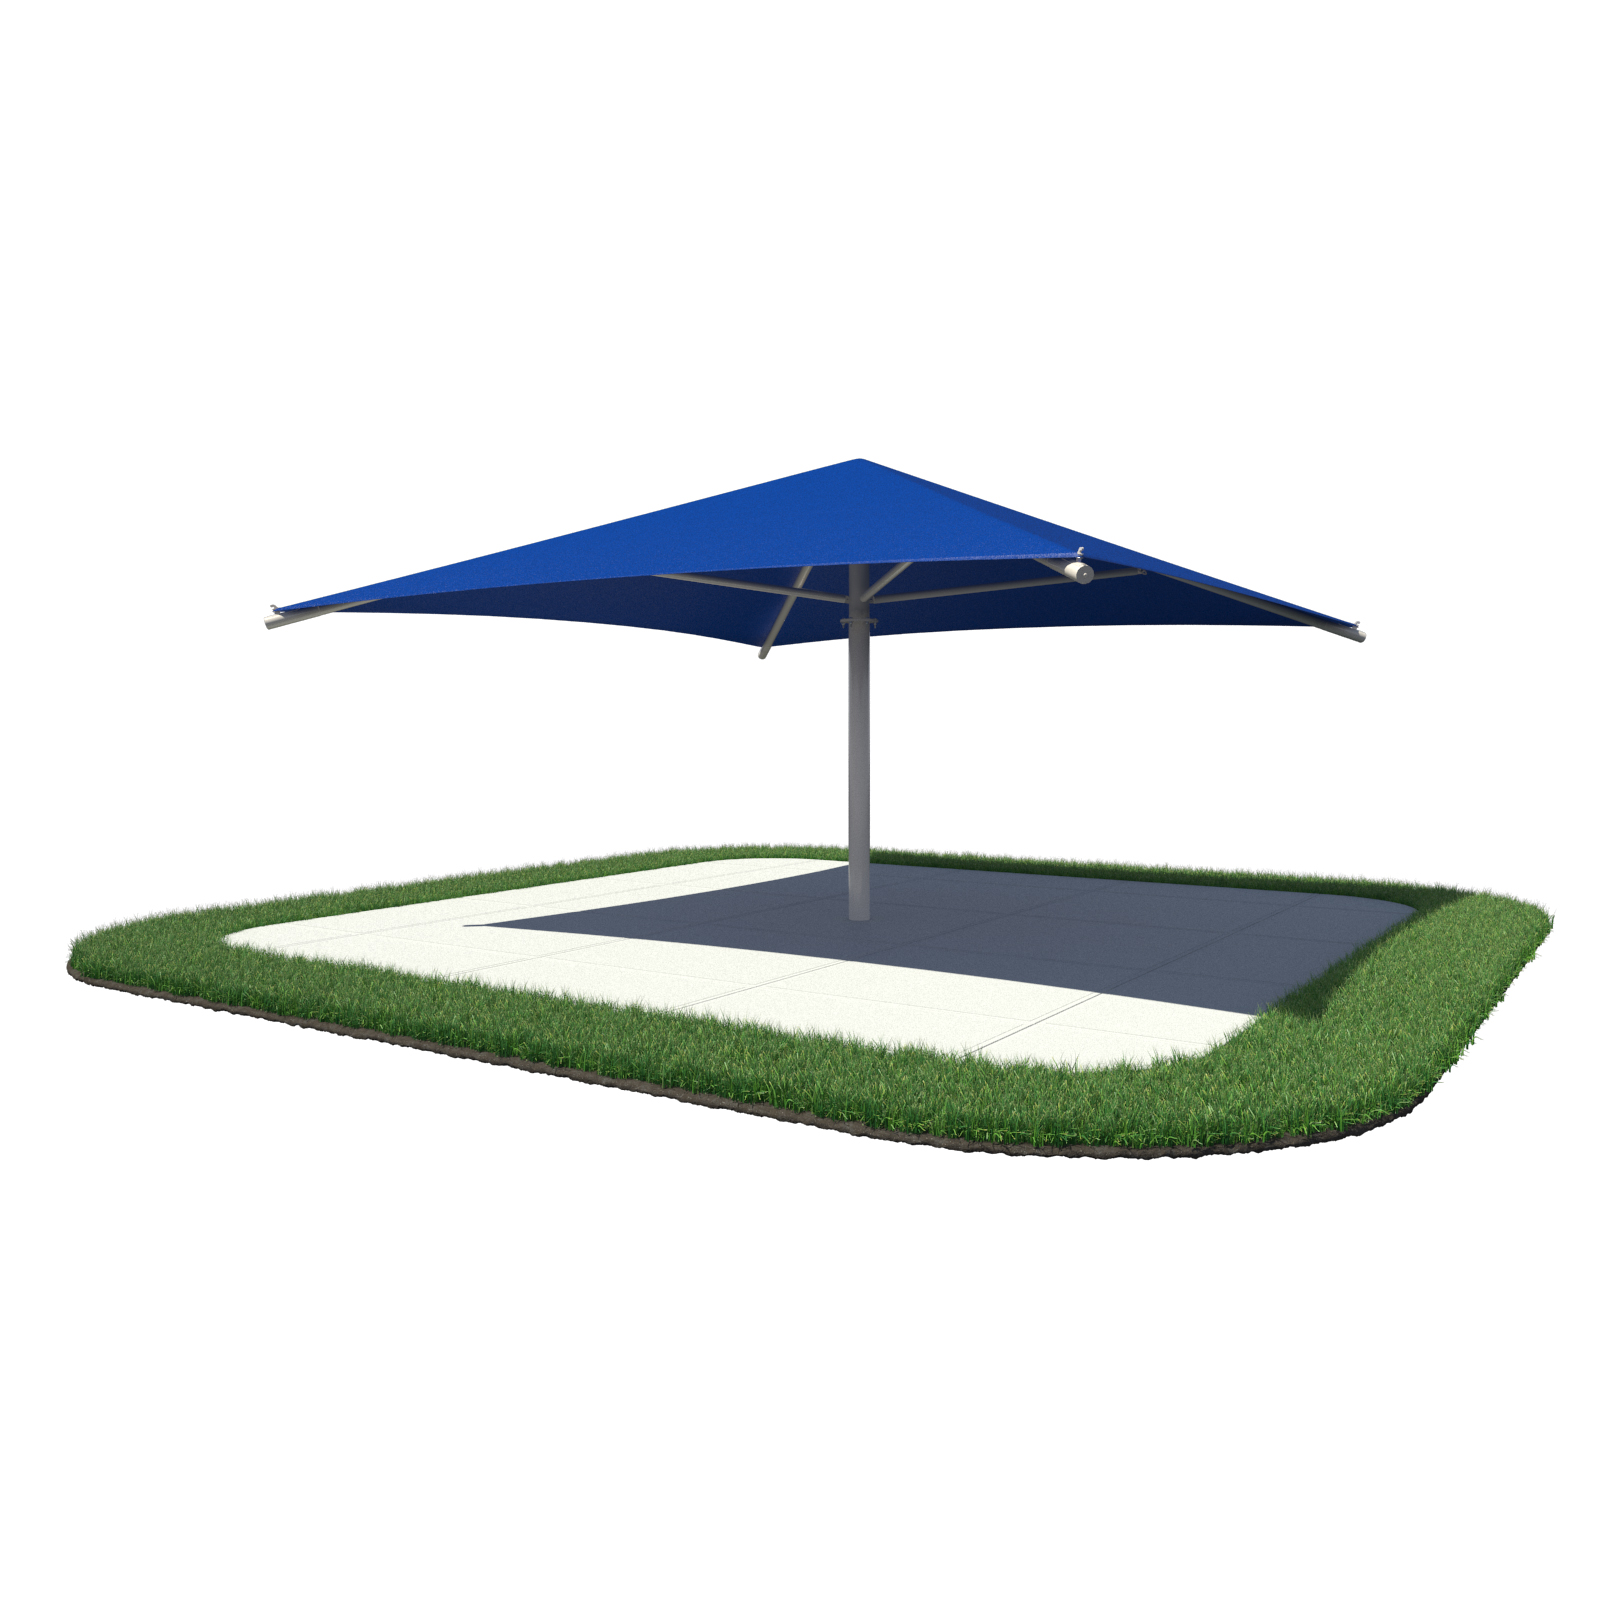 Umbrella Square Shade Shelter By Superior Shade Aaa